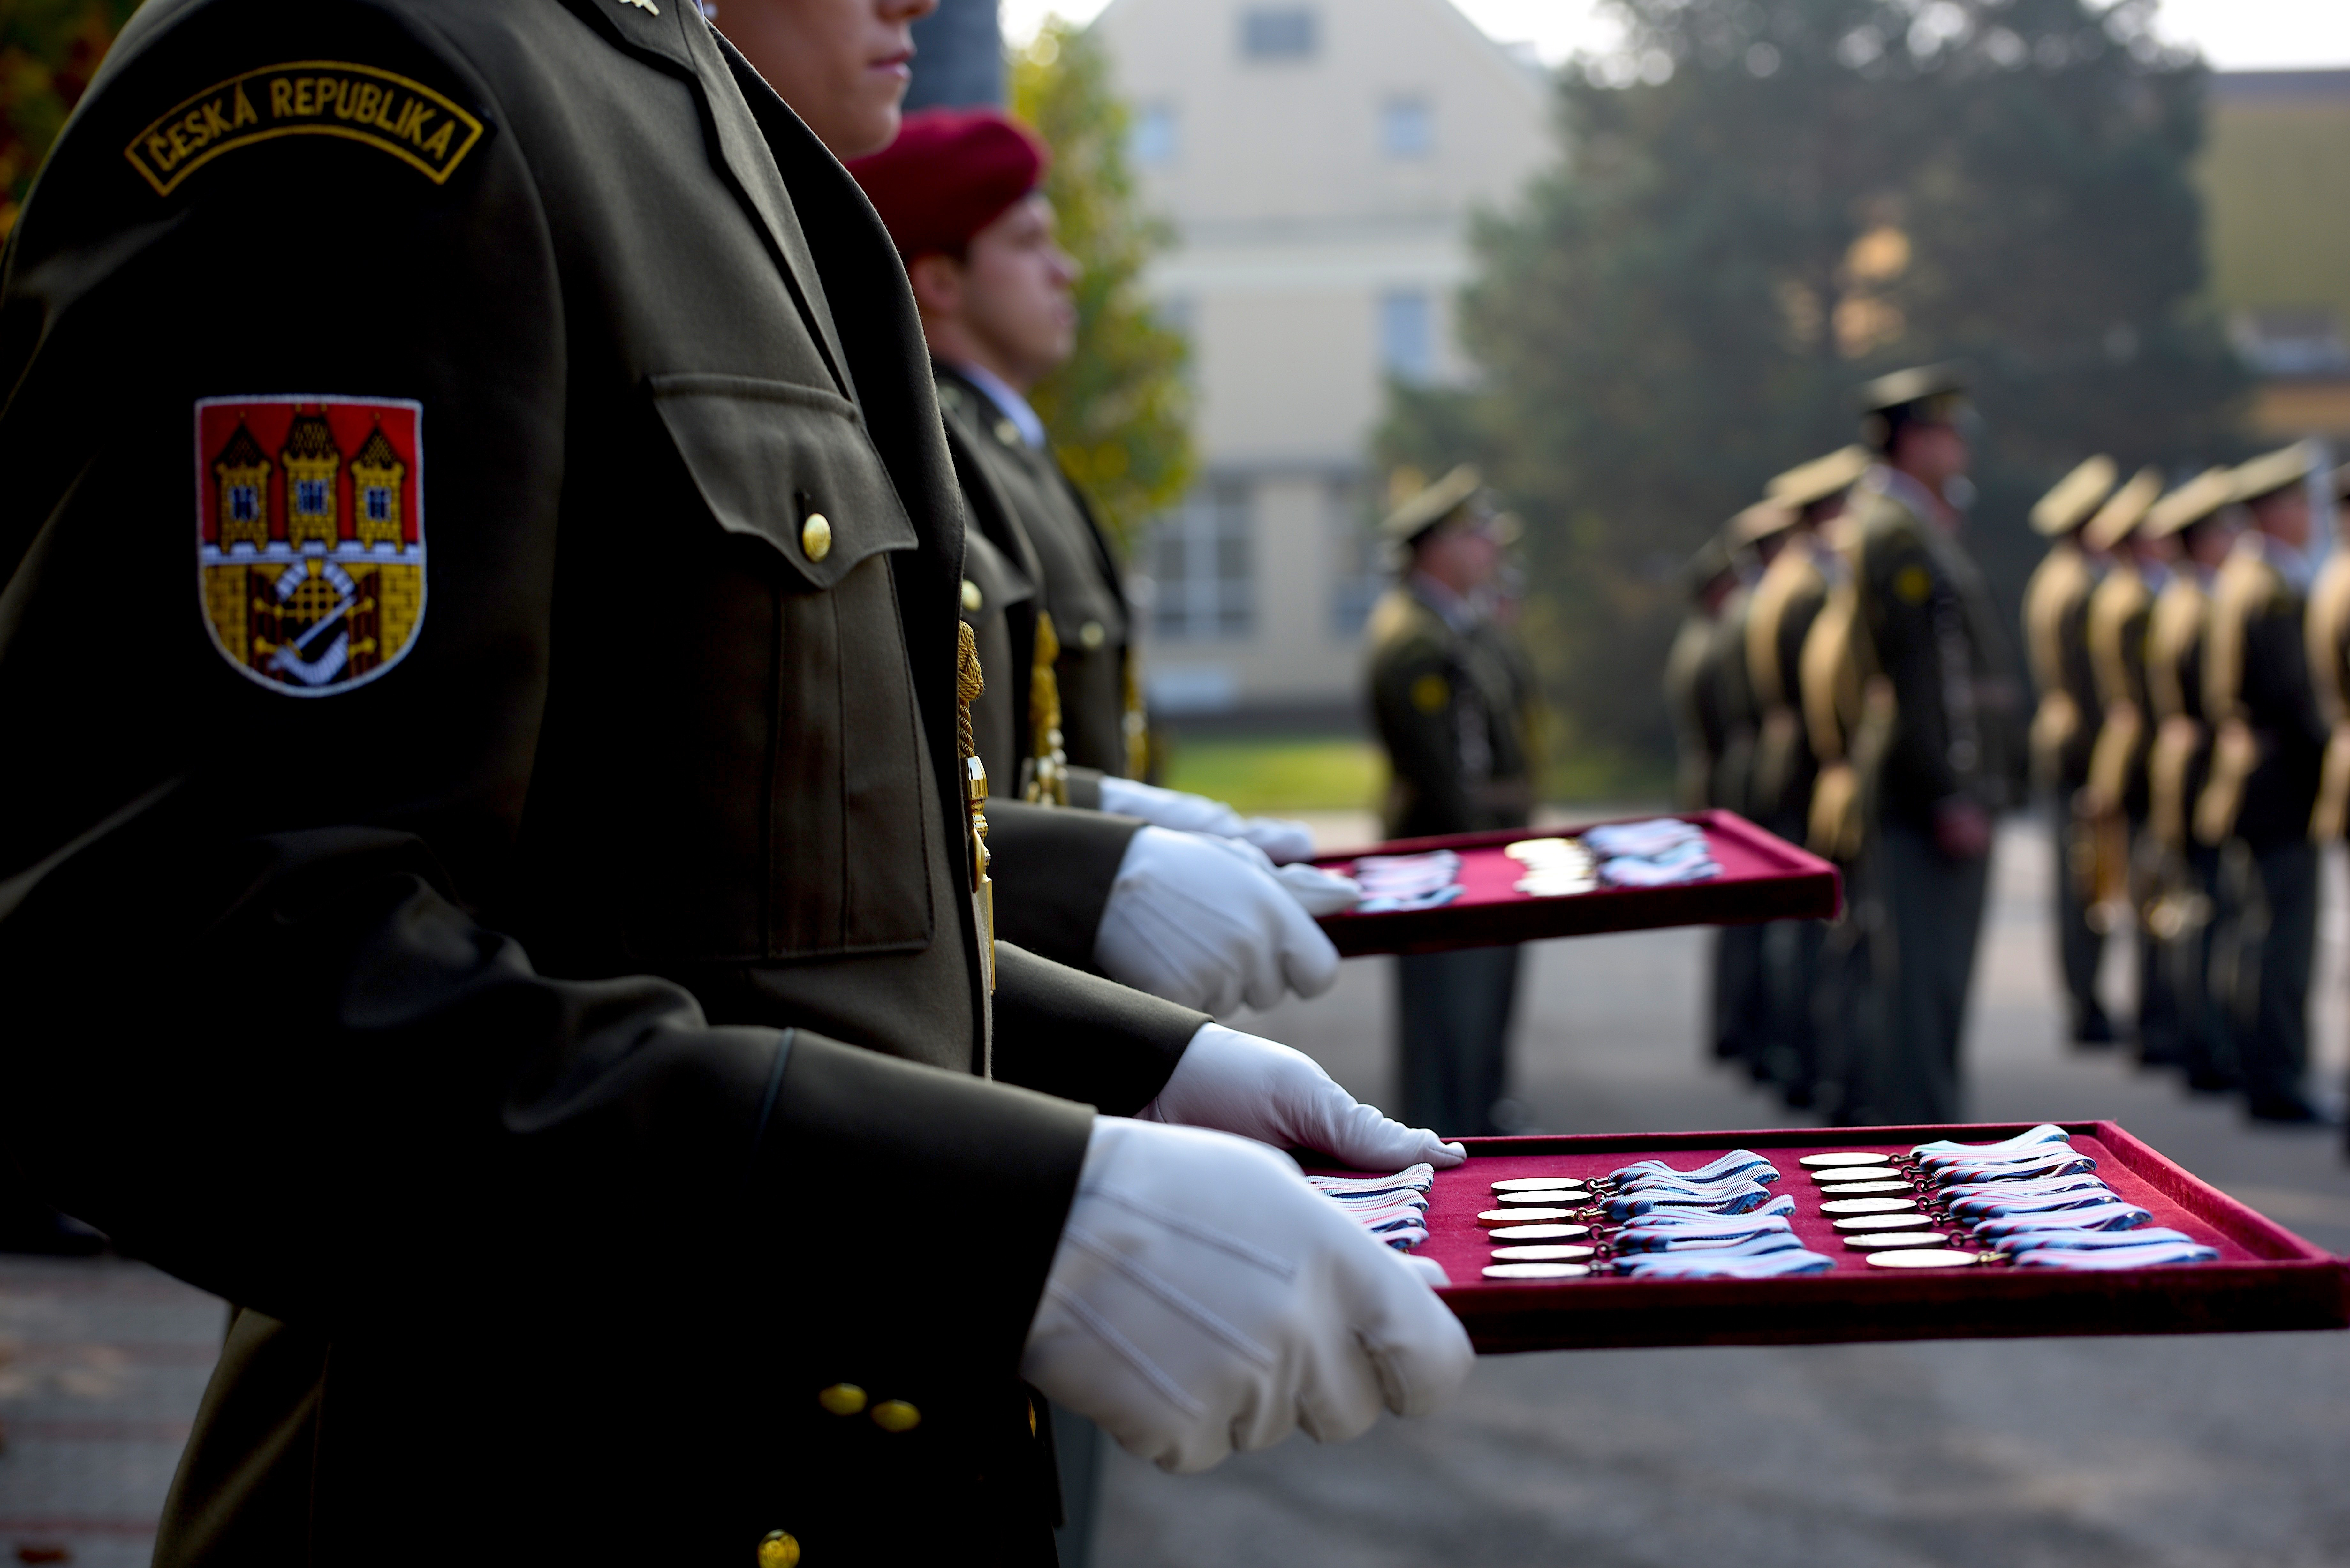 A Czech Republic soldier prepares to present awards during a during a ceremony in Prostejov, Oct. 25, 2019, marking a successful six-month tour to Western Afghanistan. During the ceremony, Special Forces Soldiers from the Czech Republic and Texas Army National Guard received awards, distinctions and badges of honor as an appreciation for their successful service abroad and excellent representation of their homeland. The Texas Military Department and the Czech Republic have participated in the U.S. Department of State's Partnership Program cooperation since 1993 with the Nebraska National Guard, in support of the U.S. European Command Theater Security Cooperation Strategy. (U.S. Army photo by Staff Sgt. Elizabeth Pena)